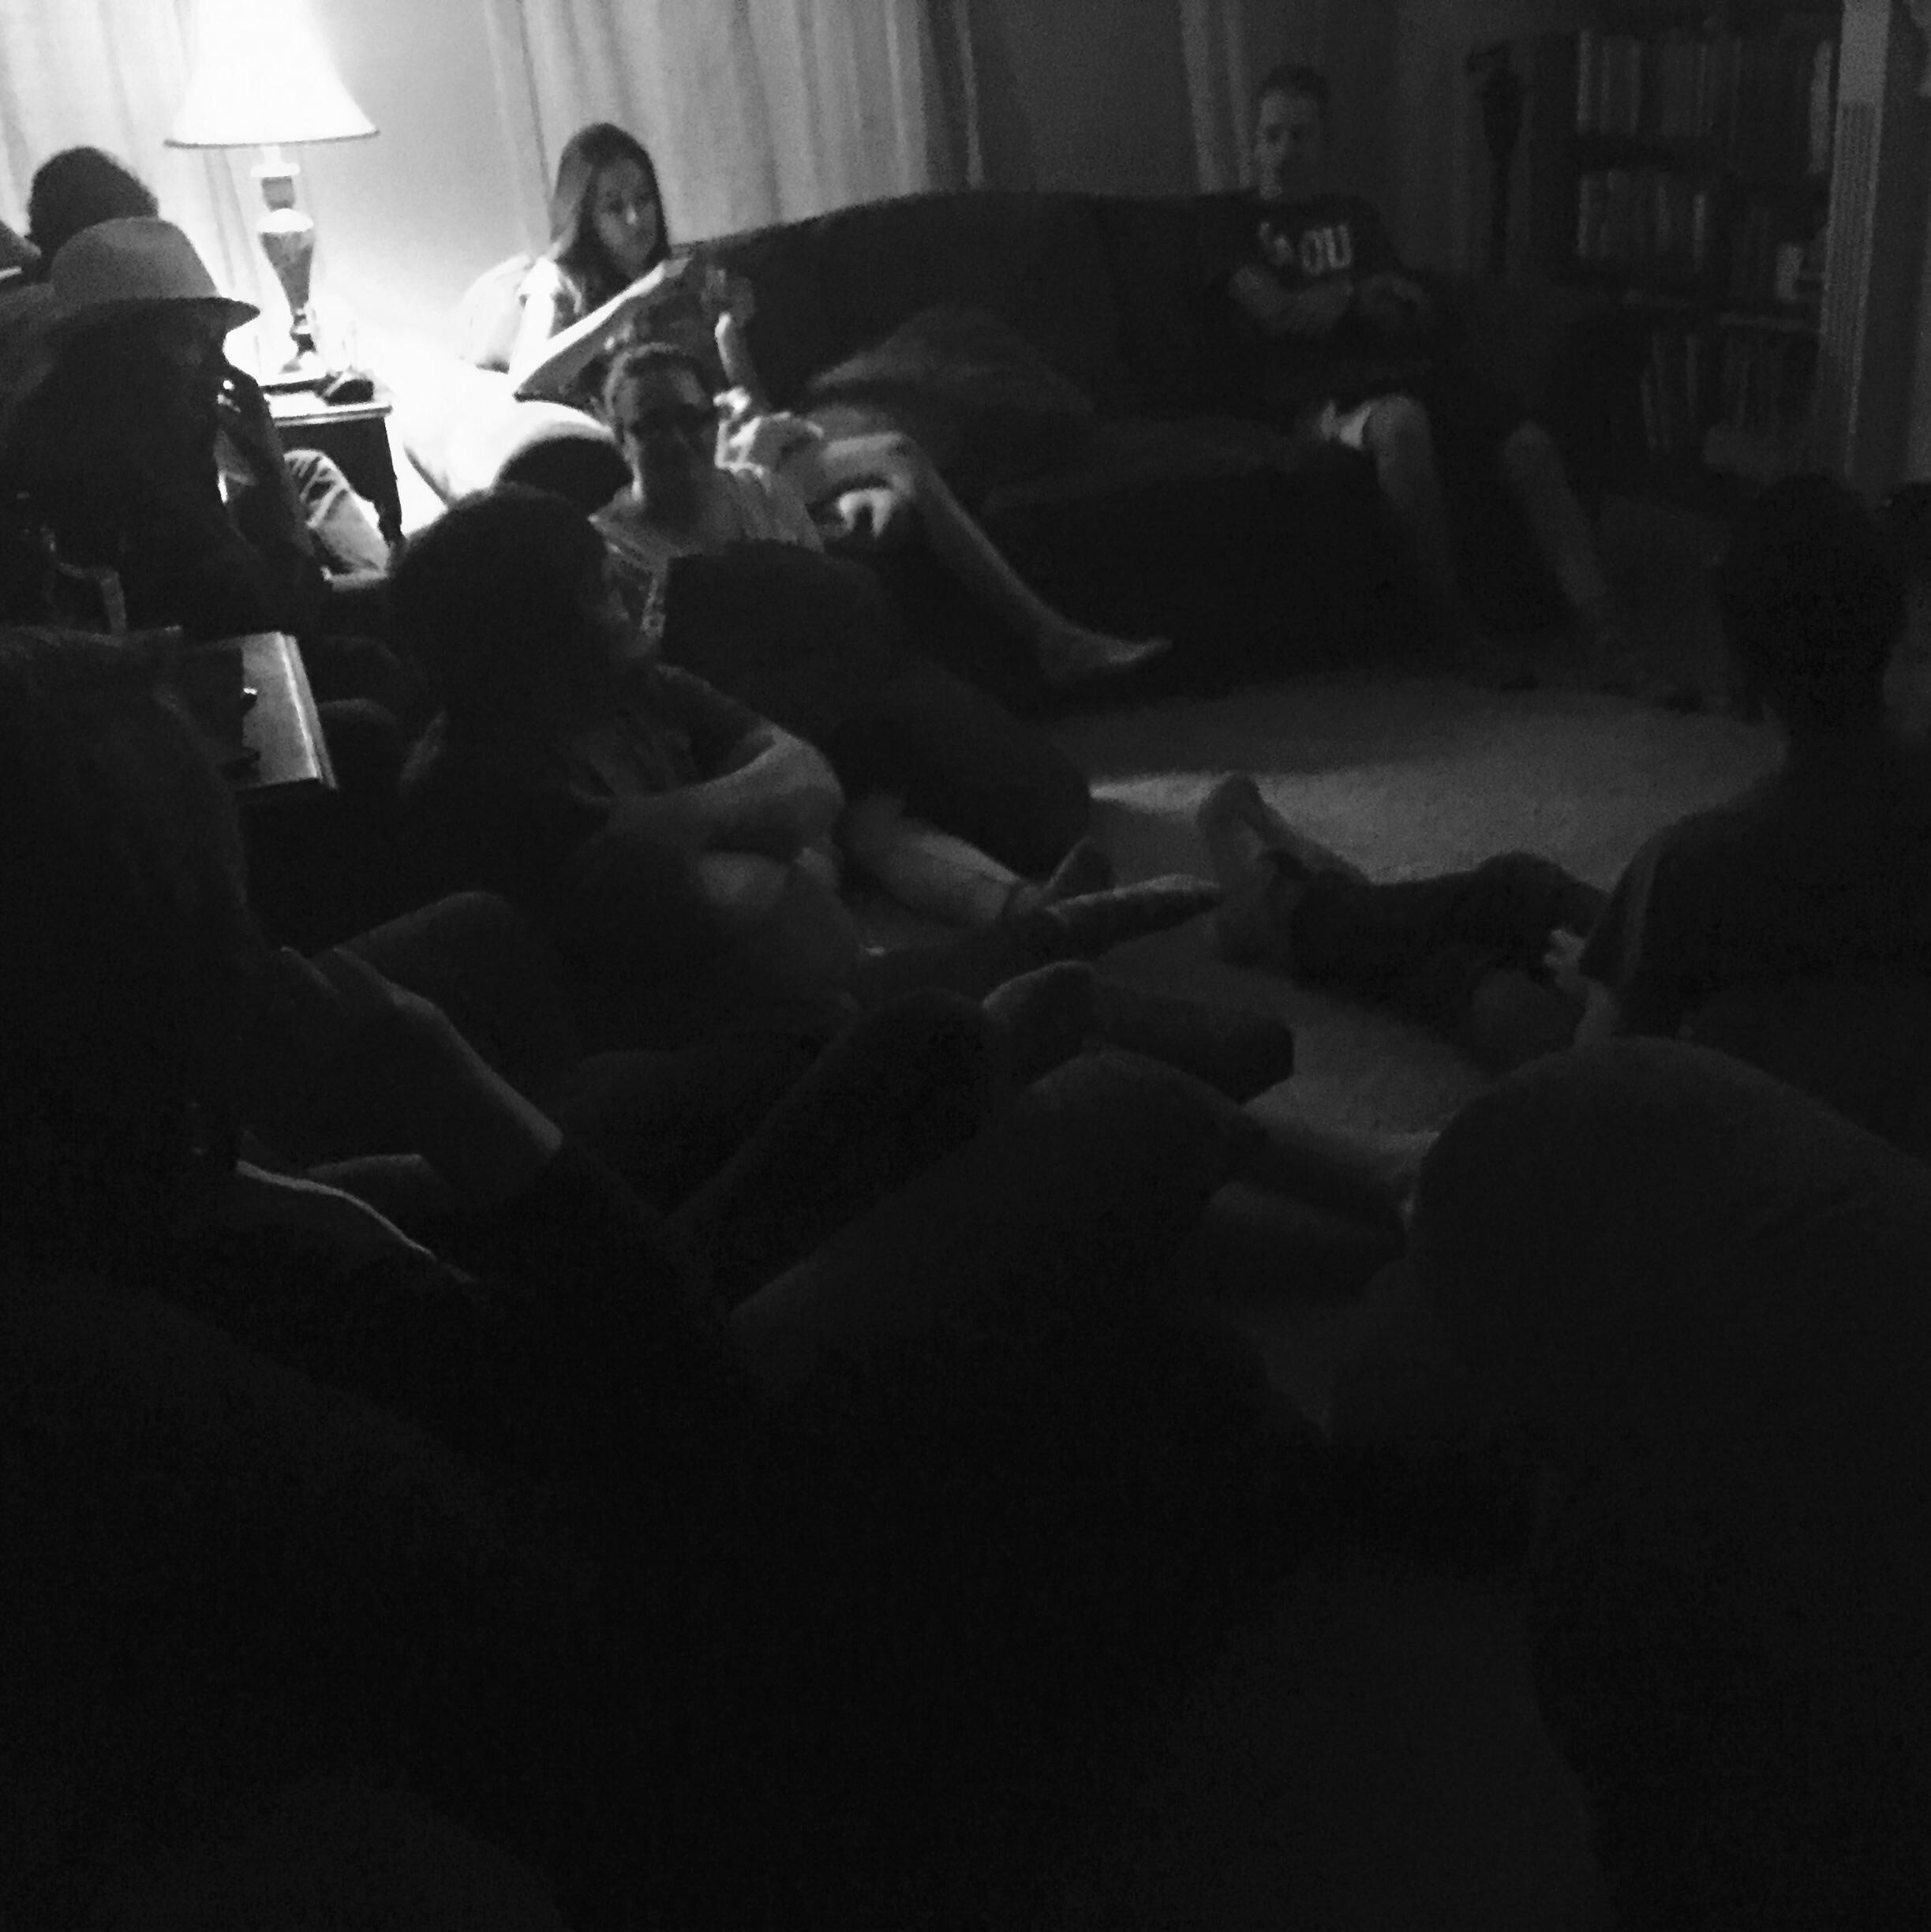 This is the movie crew, it was raining so we couldn't watch it outside.